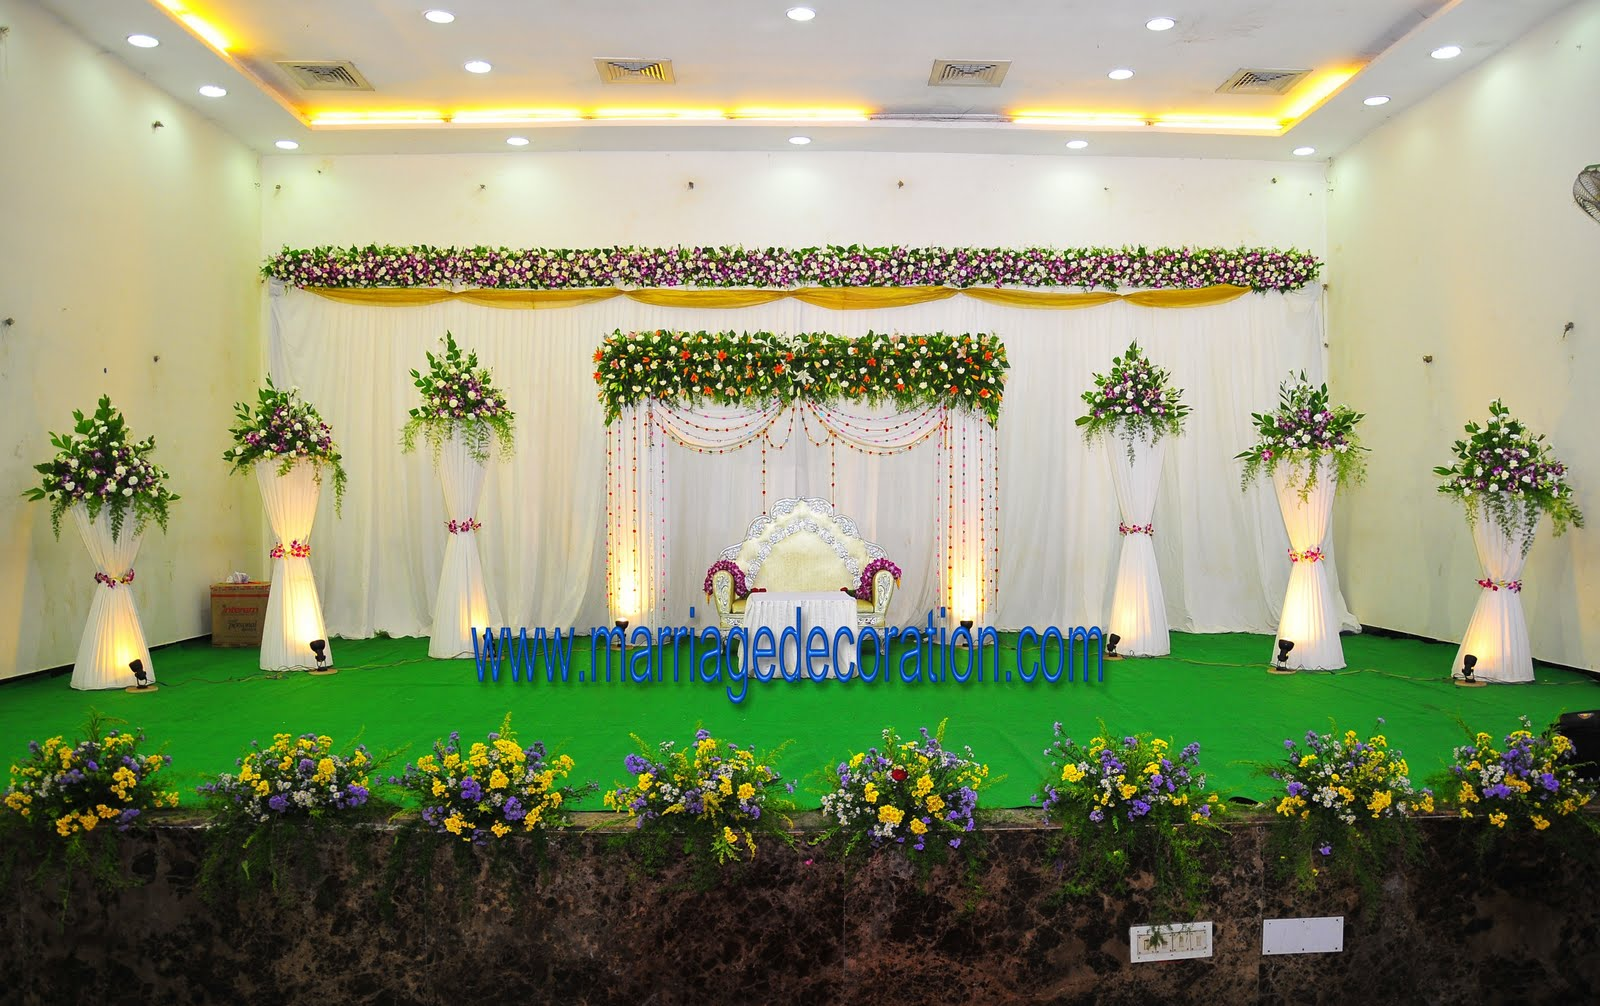 Wedding gate and stage decoration beautiful indian wedding stage beautiful mg escenarios fiestas pinterest stage mg choice image with wedding gate and stage decoration junglespirit Images